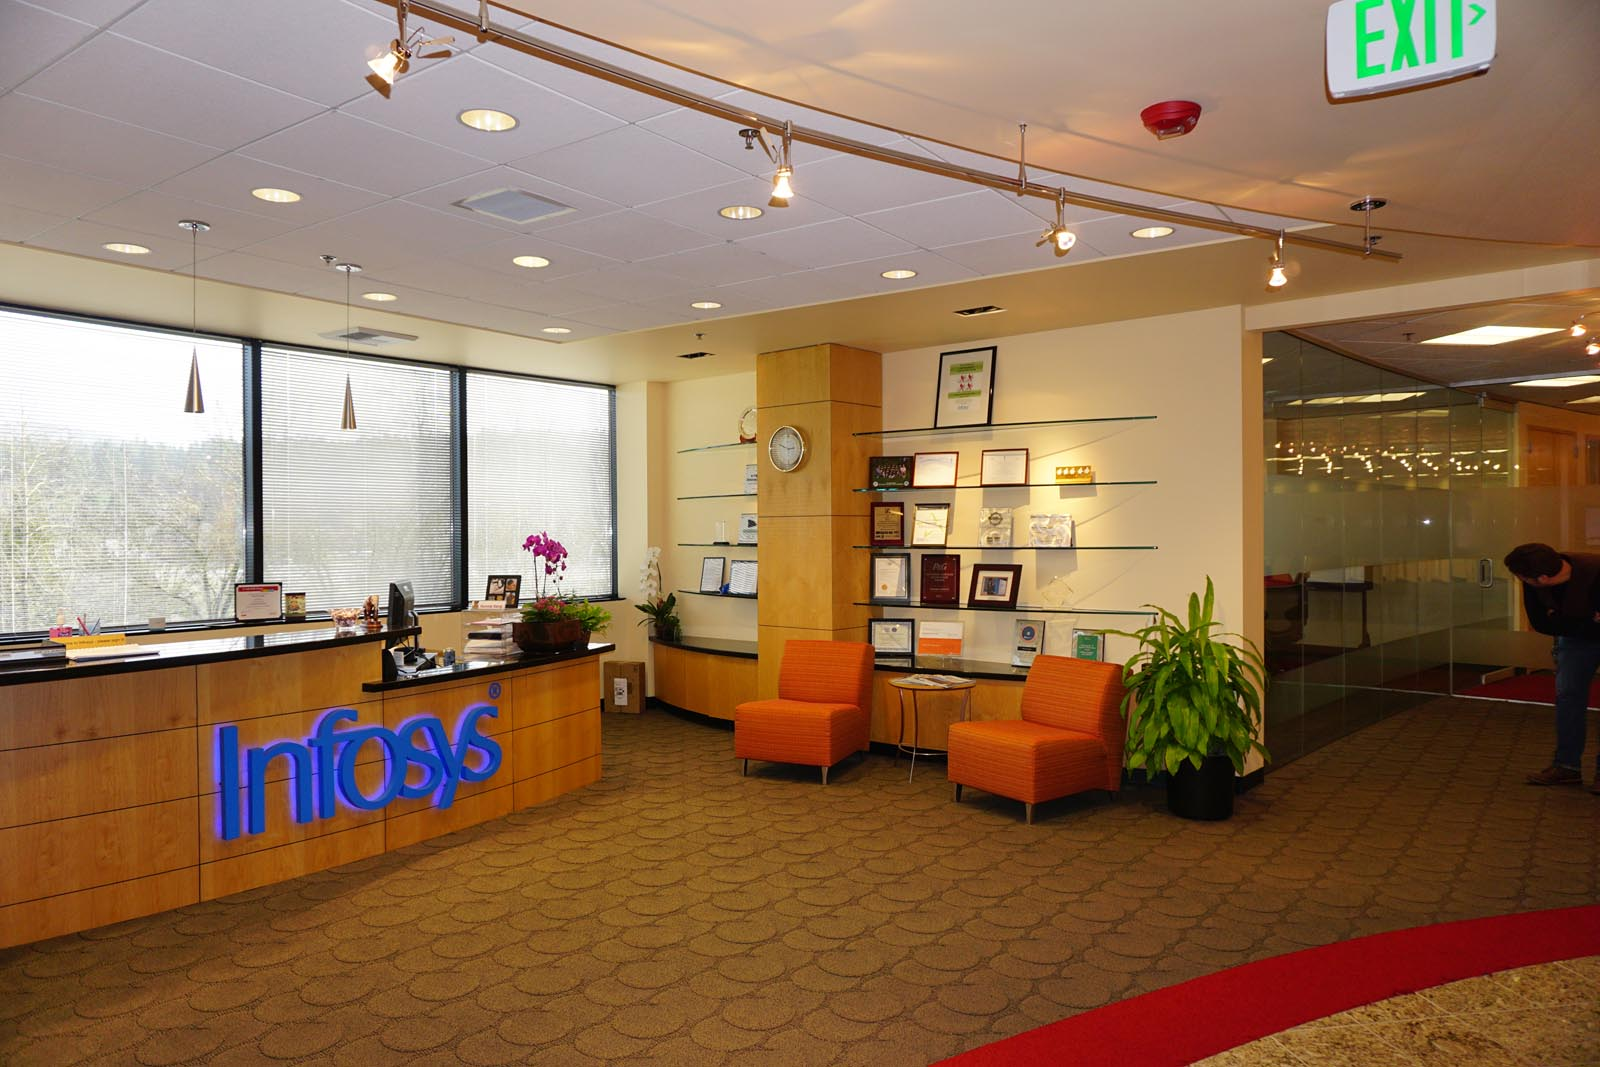 Infosys front desk and overhead lighting